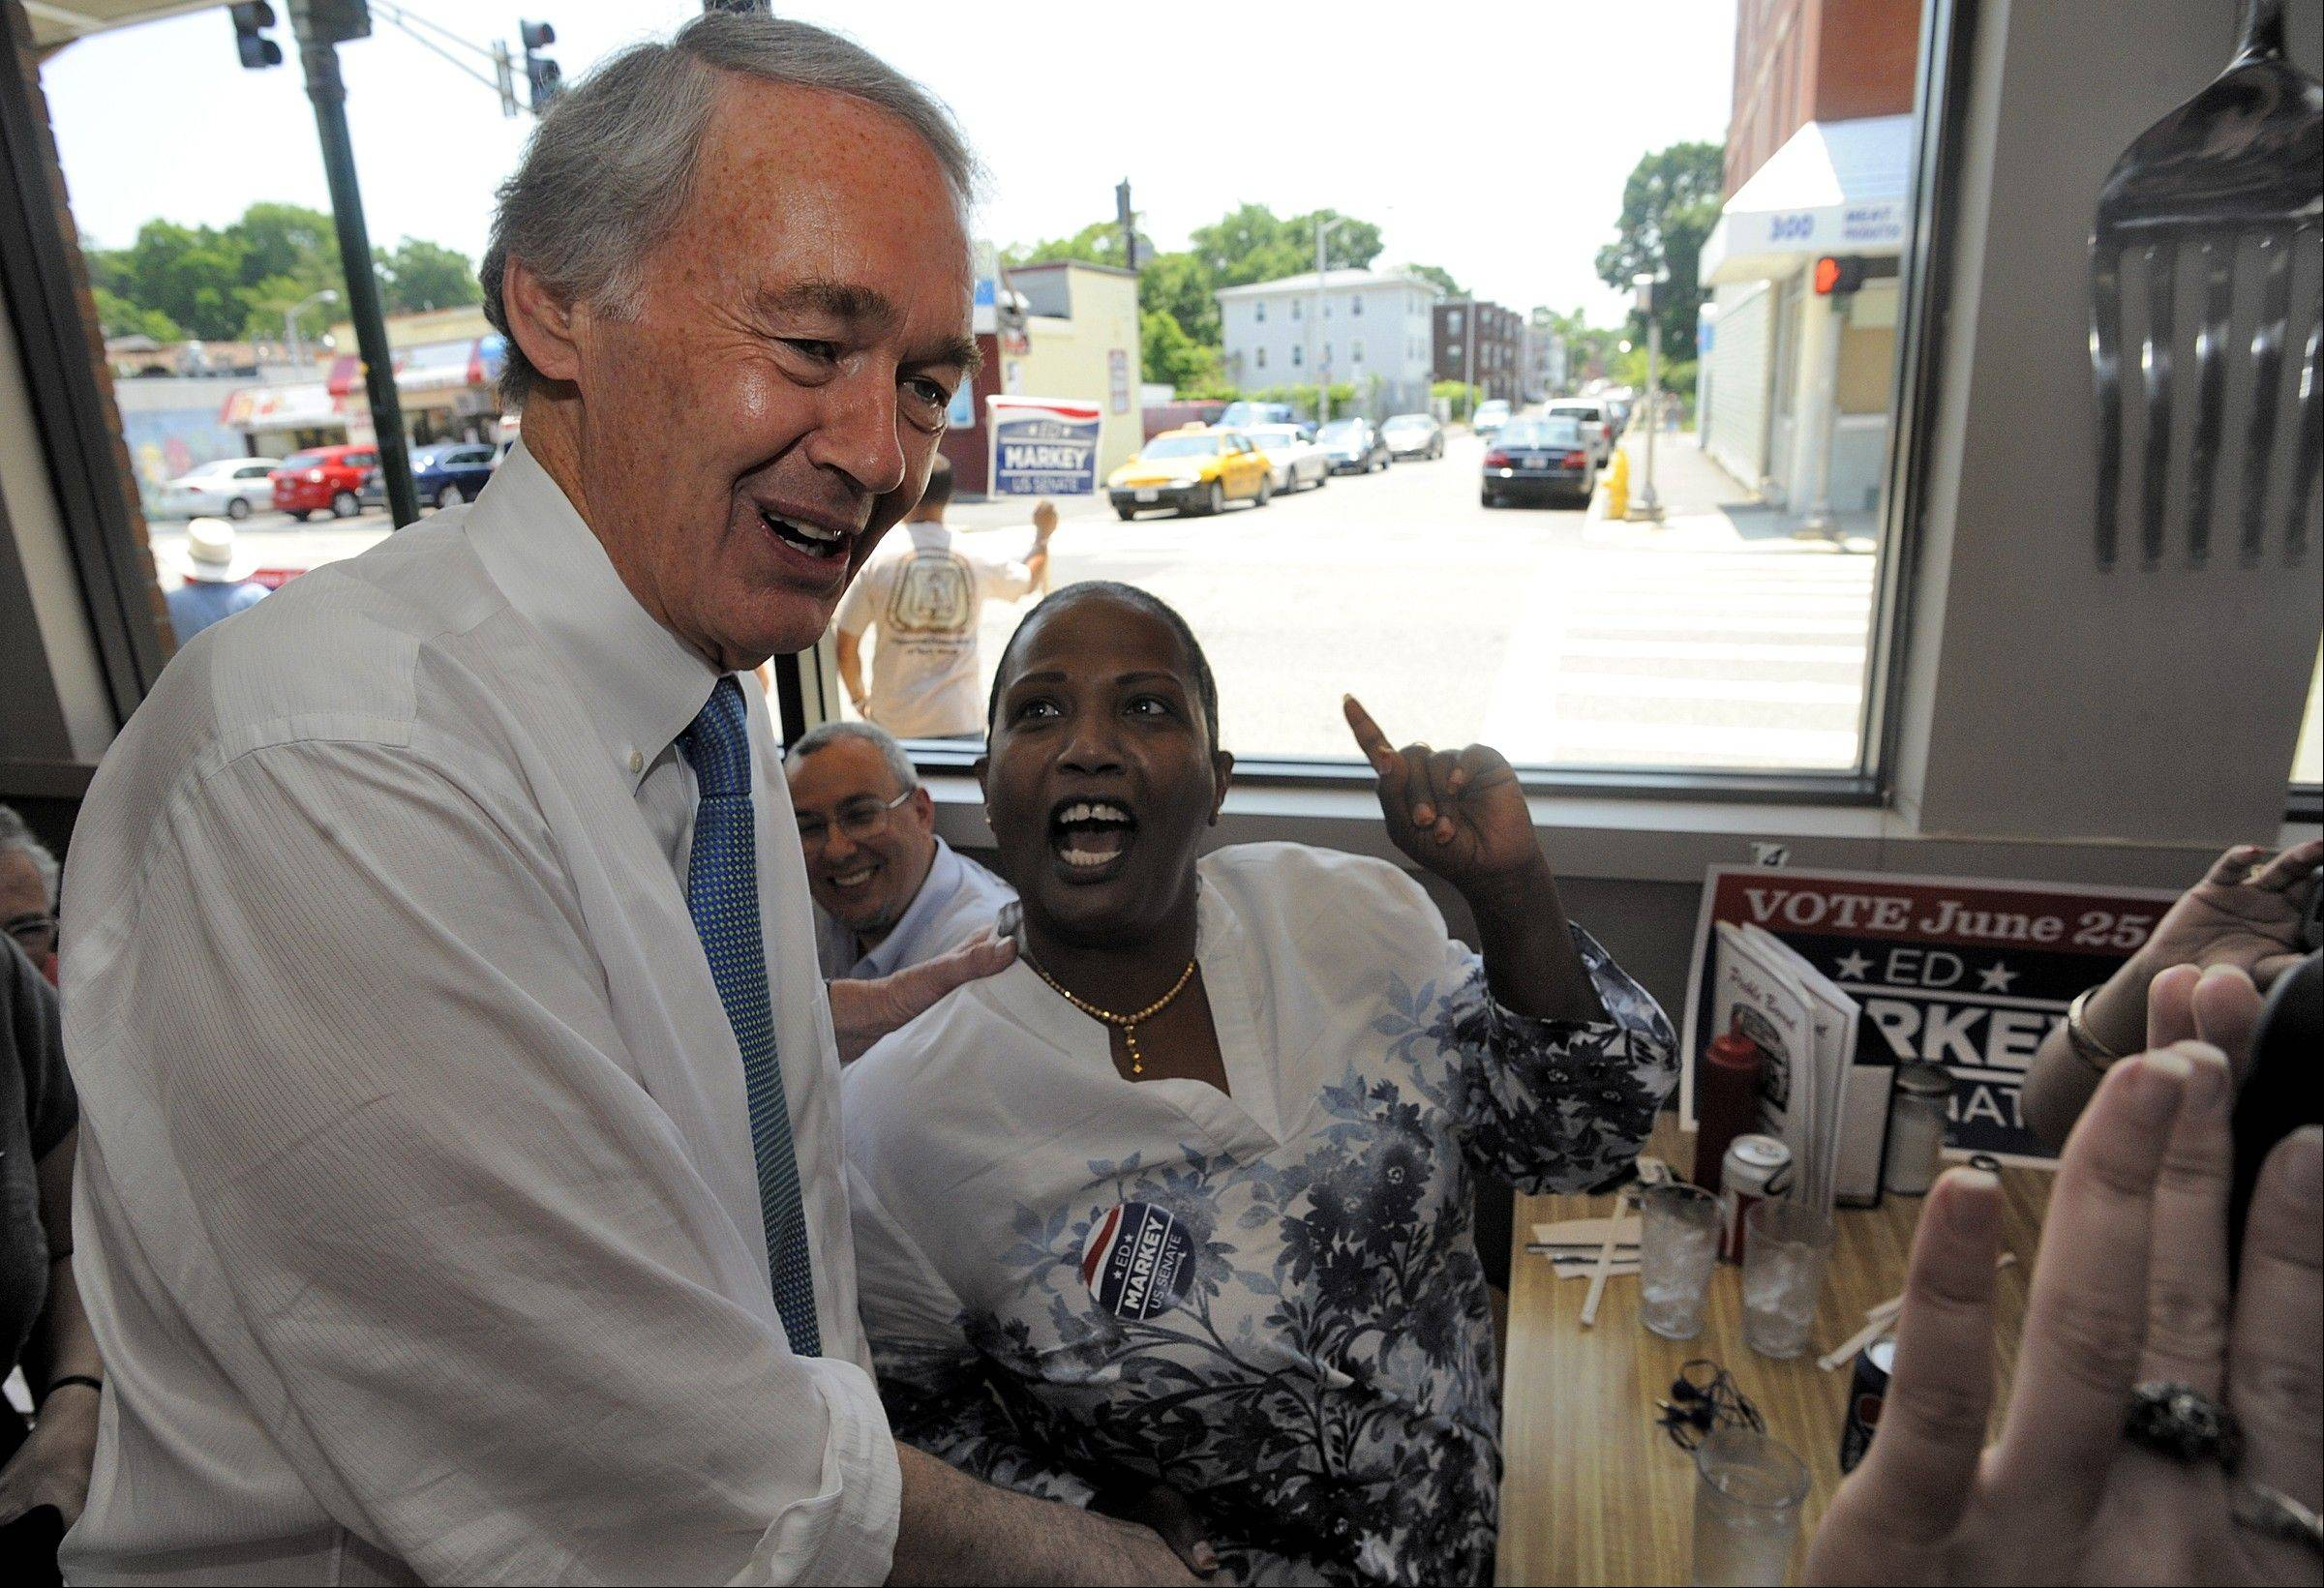 Massachusetts Senate Democratic candidate Ed Markey, left, meets and greets grass-roots volunteers and supporters Monday in the final hours before Massachusetts' special election for the U.S. Senate, where turnout is expected to be light, a contrast to the high-profile special election in the state three years ago.